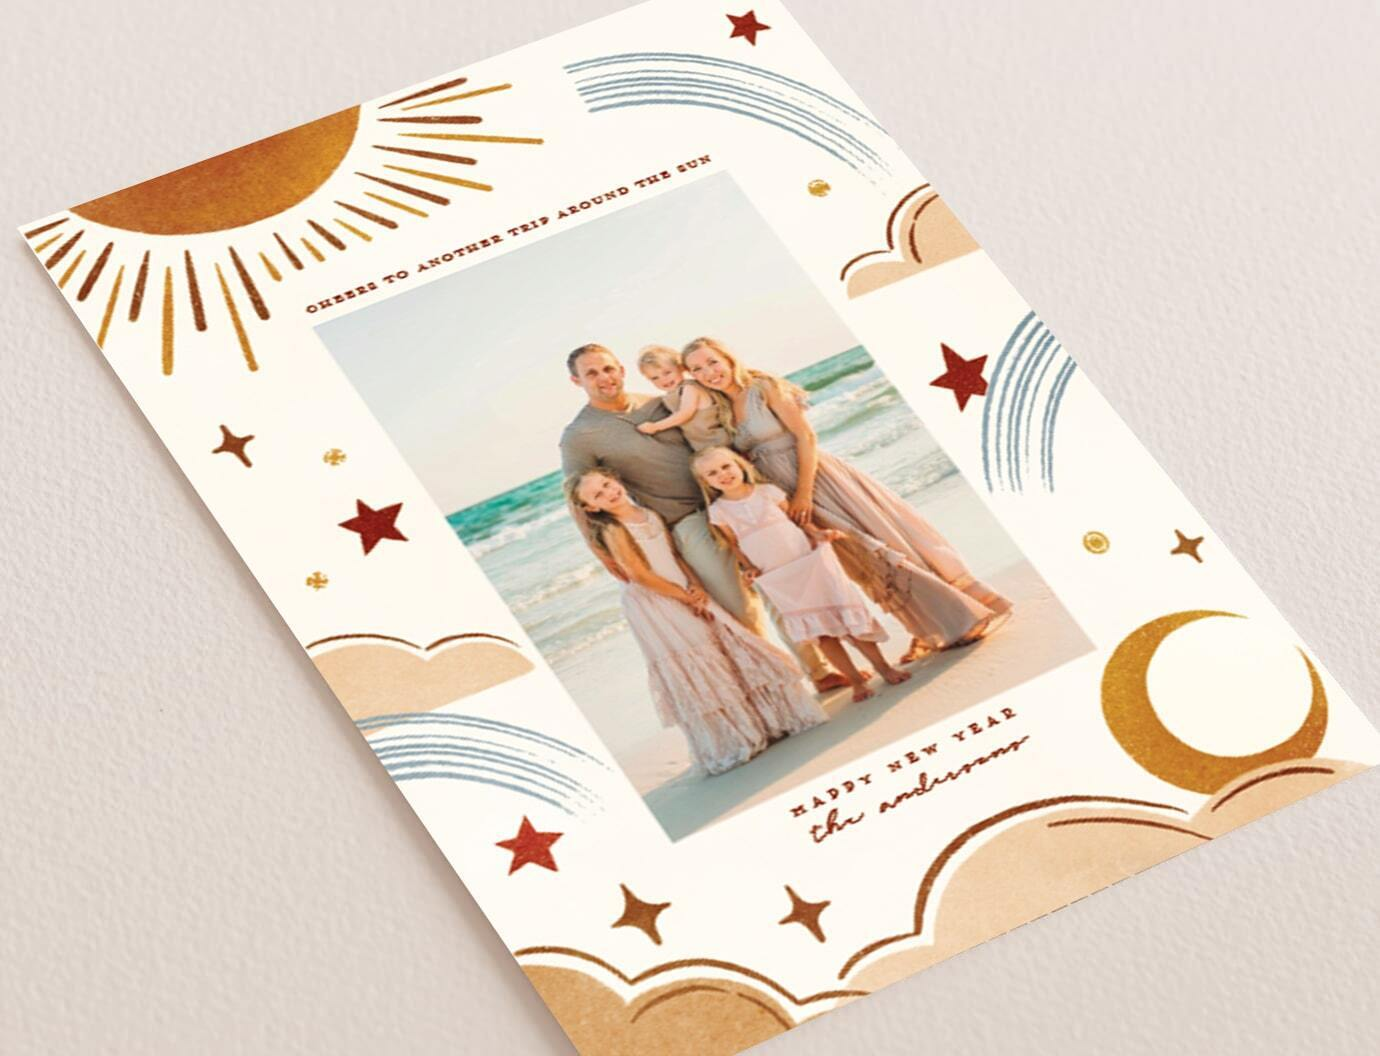 Celestial holiday card trend